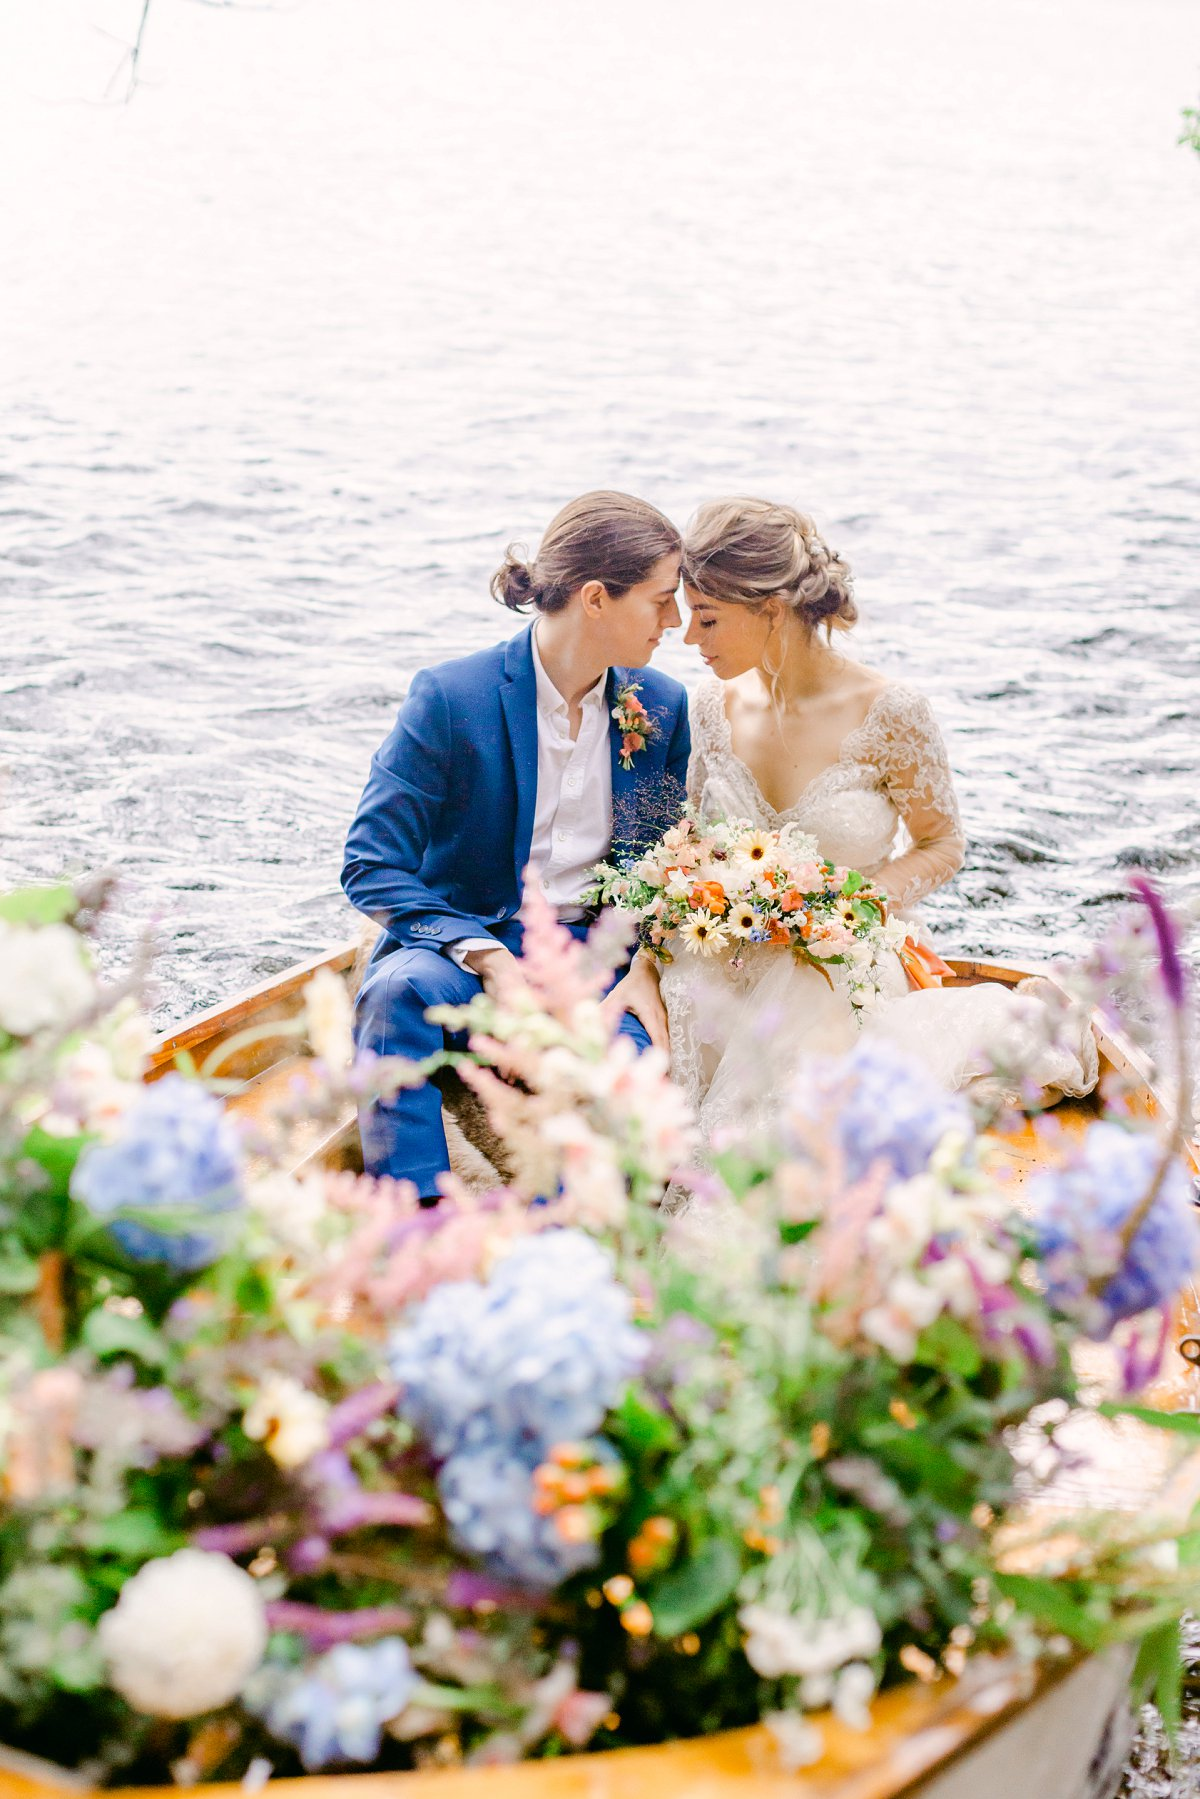 A Styled Wedding Shoot at Town Head Estate Windermere (c) Ailsa Reeve Photography (22)